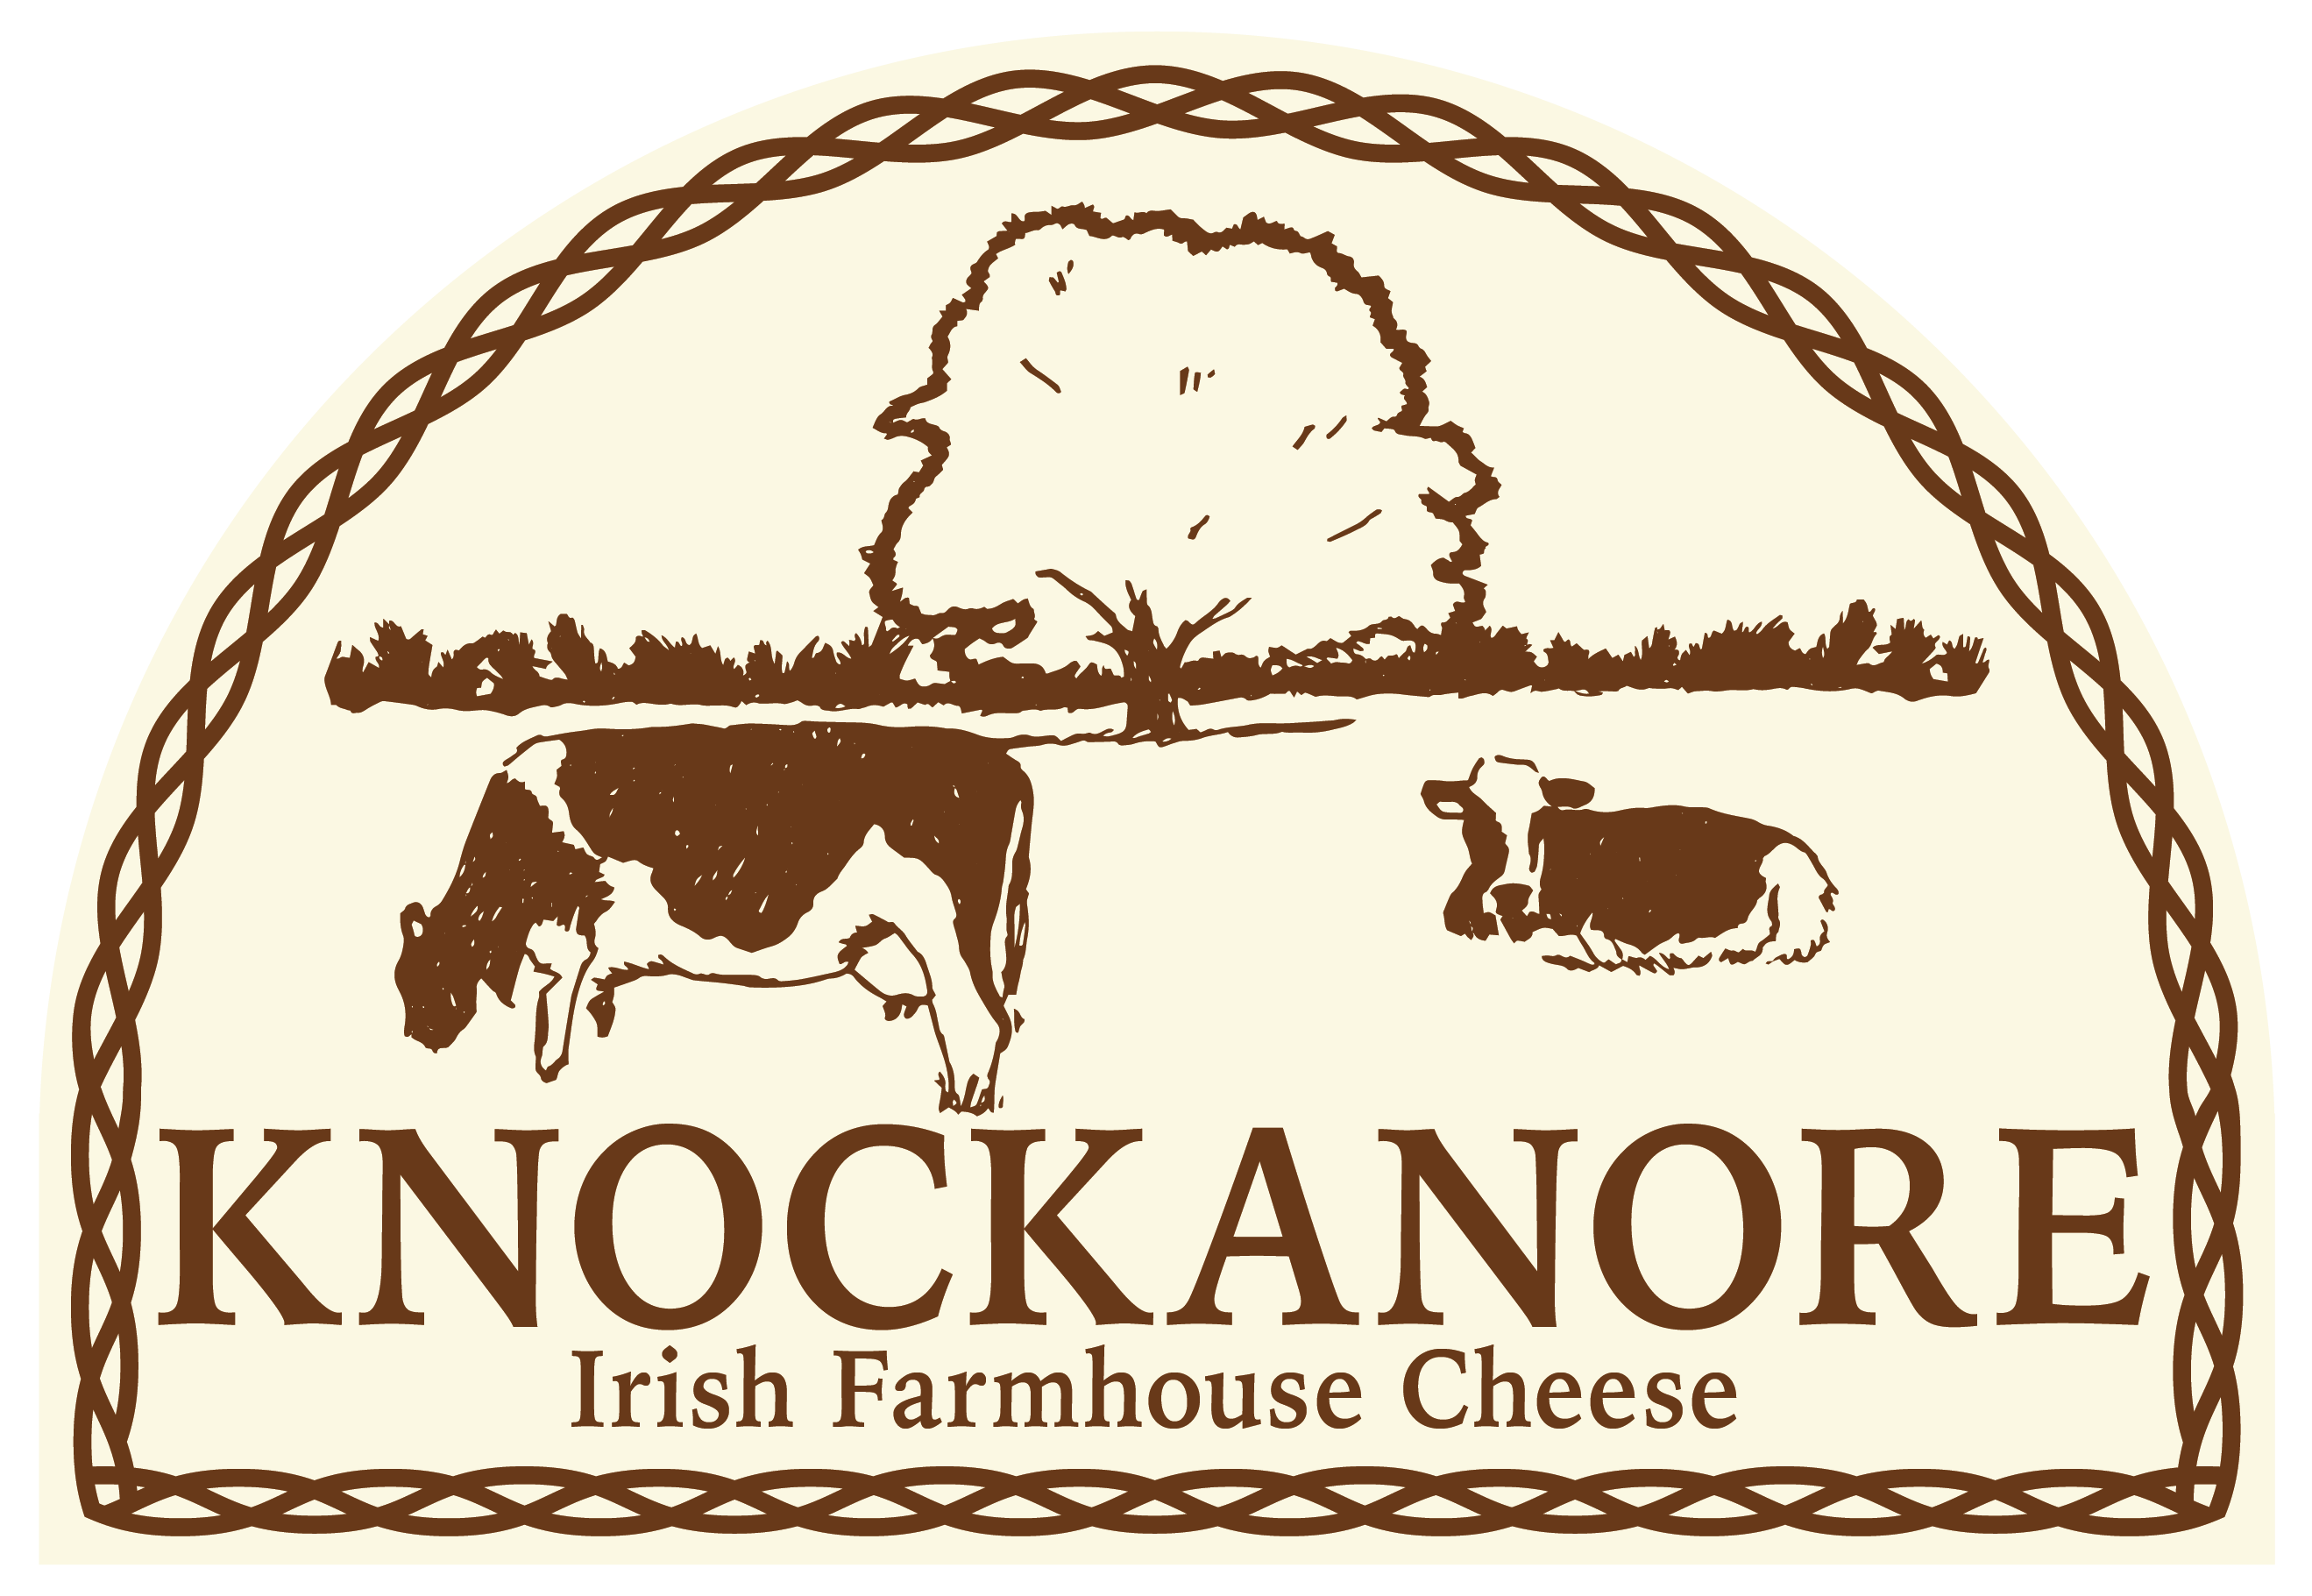 Image of Knockanore Farmhouse Cheese Co Ltd logotype